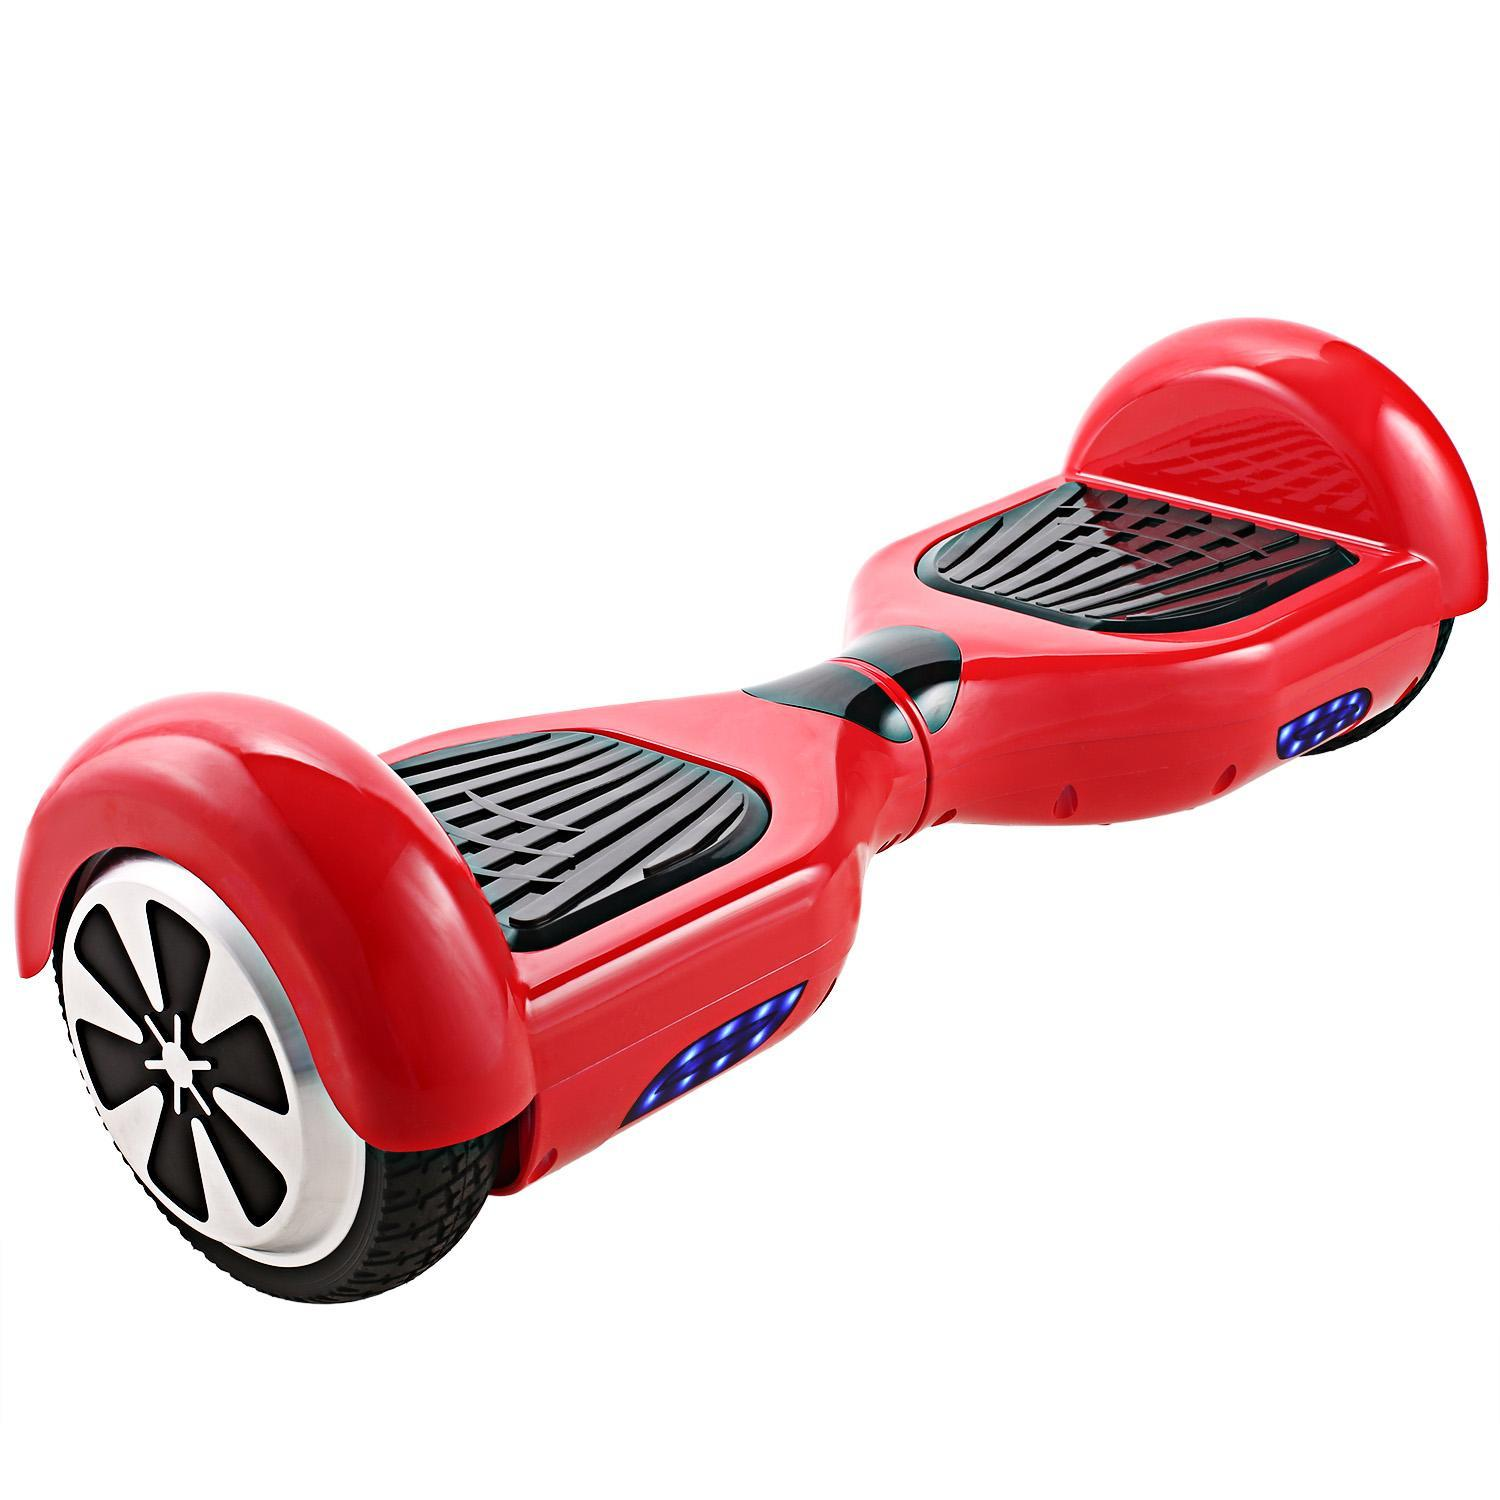 Self Balance Scooter Motorized 2 Wheel Self Hover Balance Board All-Terrain Tires Personal Hover Transporter 0